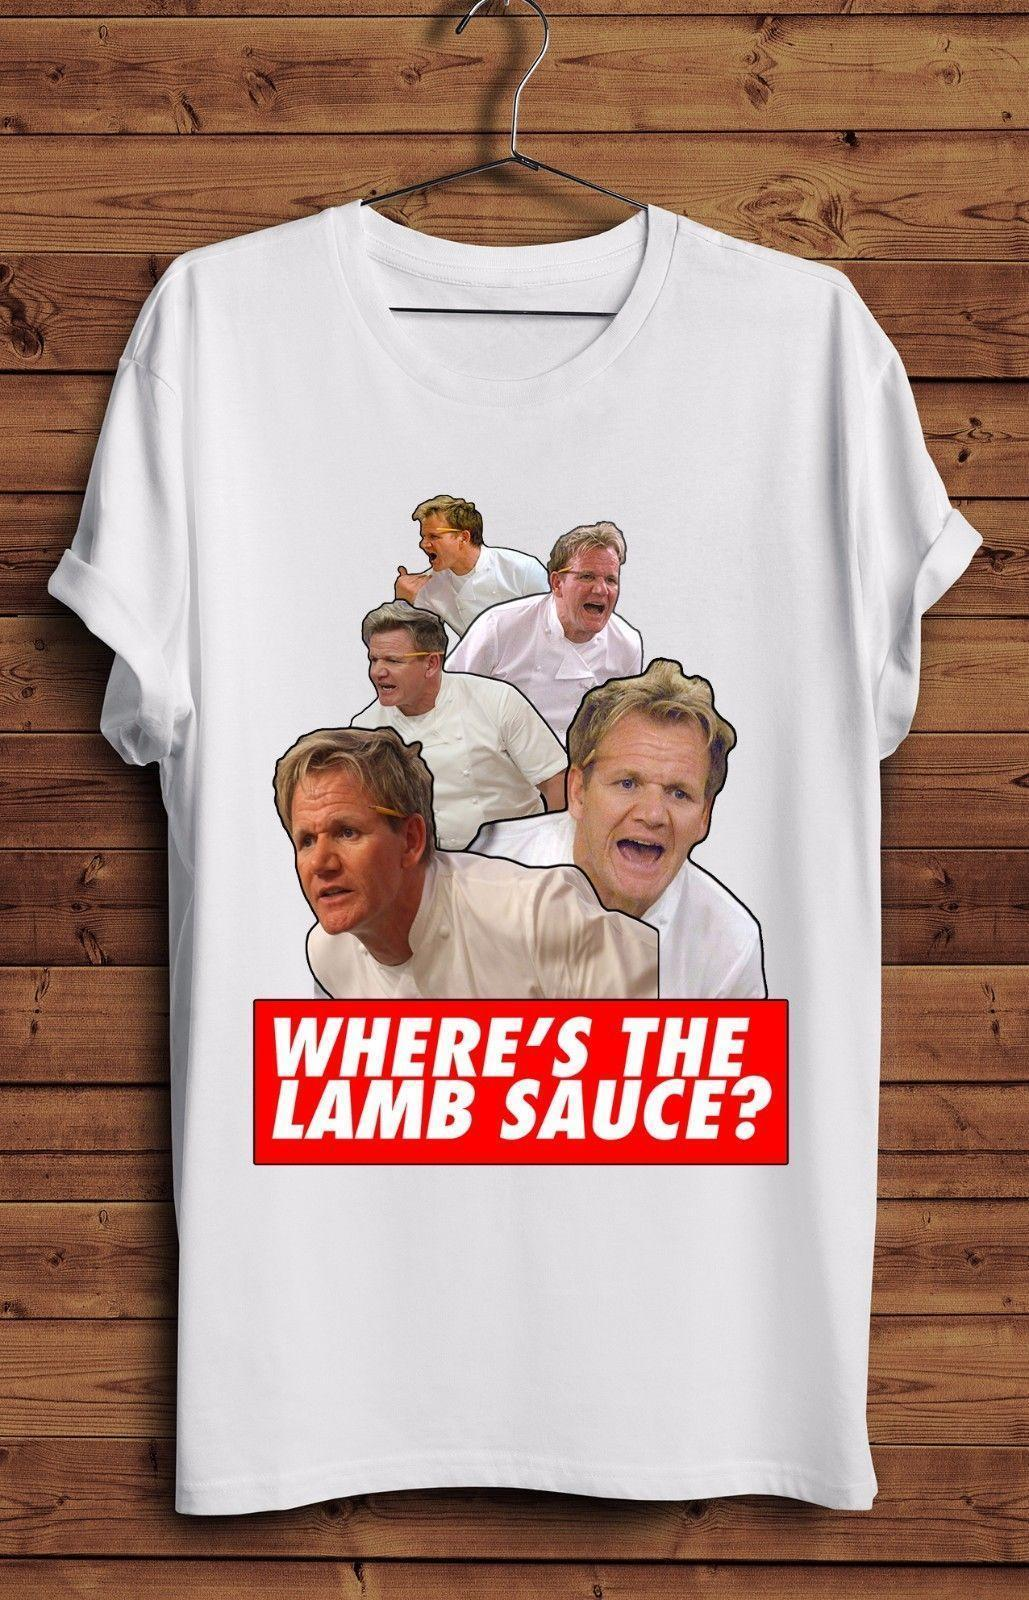 87d58ea1 Wheres The Lamb Sauce T Shirt Ramsey Gordon Ramsay Funny Meme Hells Tumblr  Funny Tshirts Long Sleeve Shirts From Jie43, $14.67| DHgate.Com